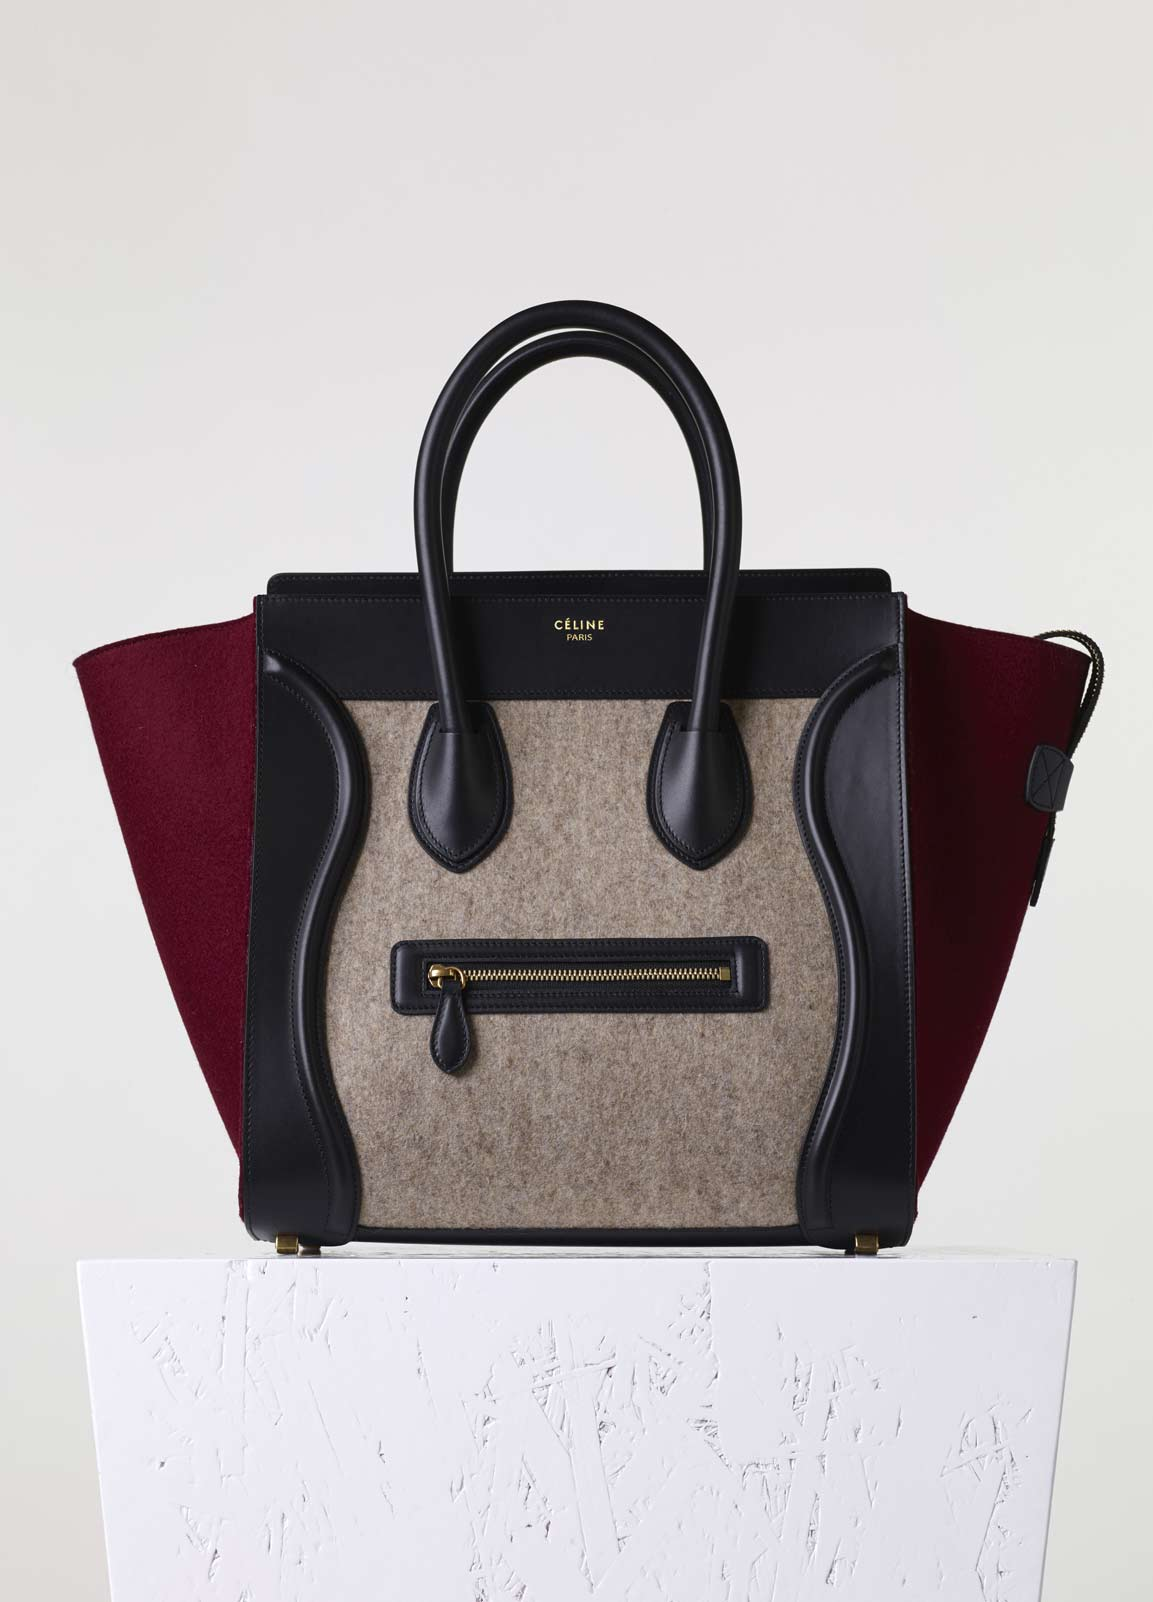 celine designer bags - Celine Pre-Fall 2015 Bag Collection featuring new Sangle Hobo ...